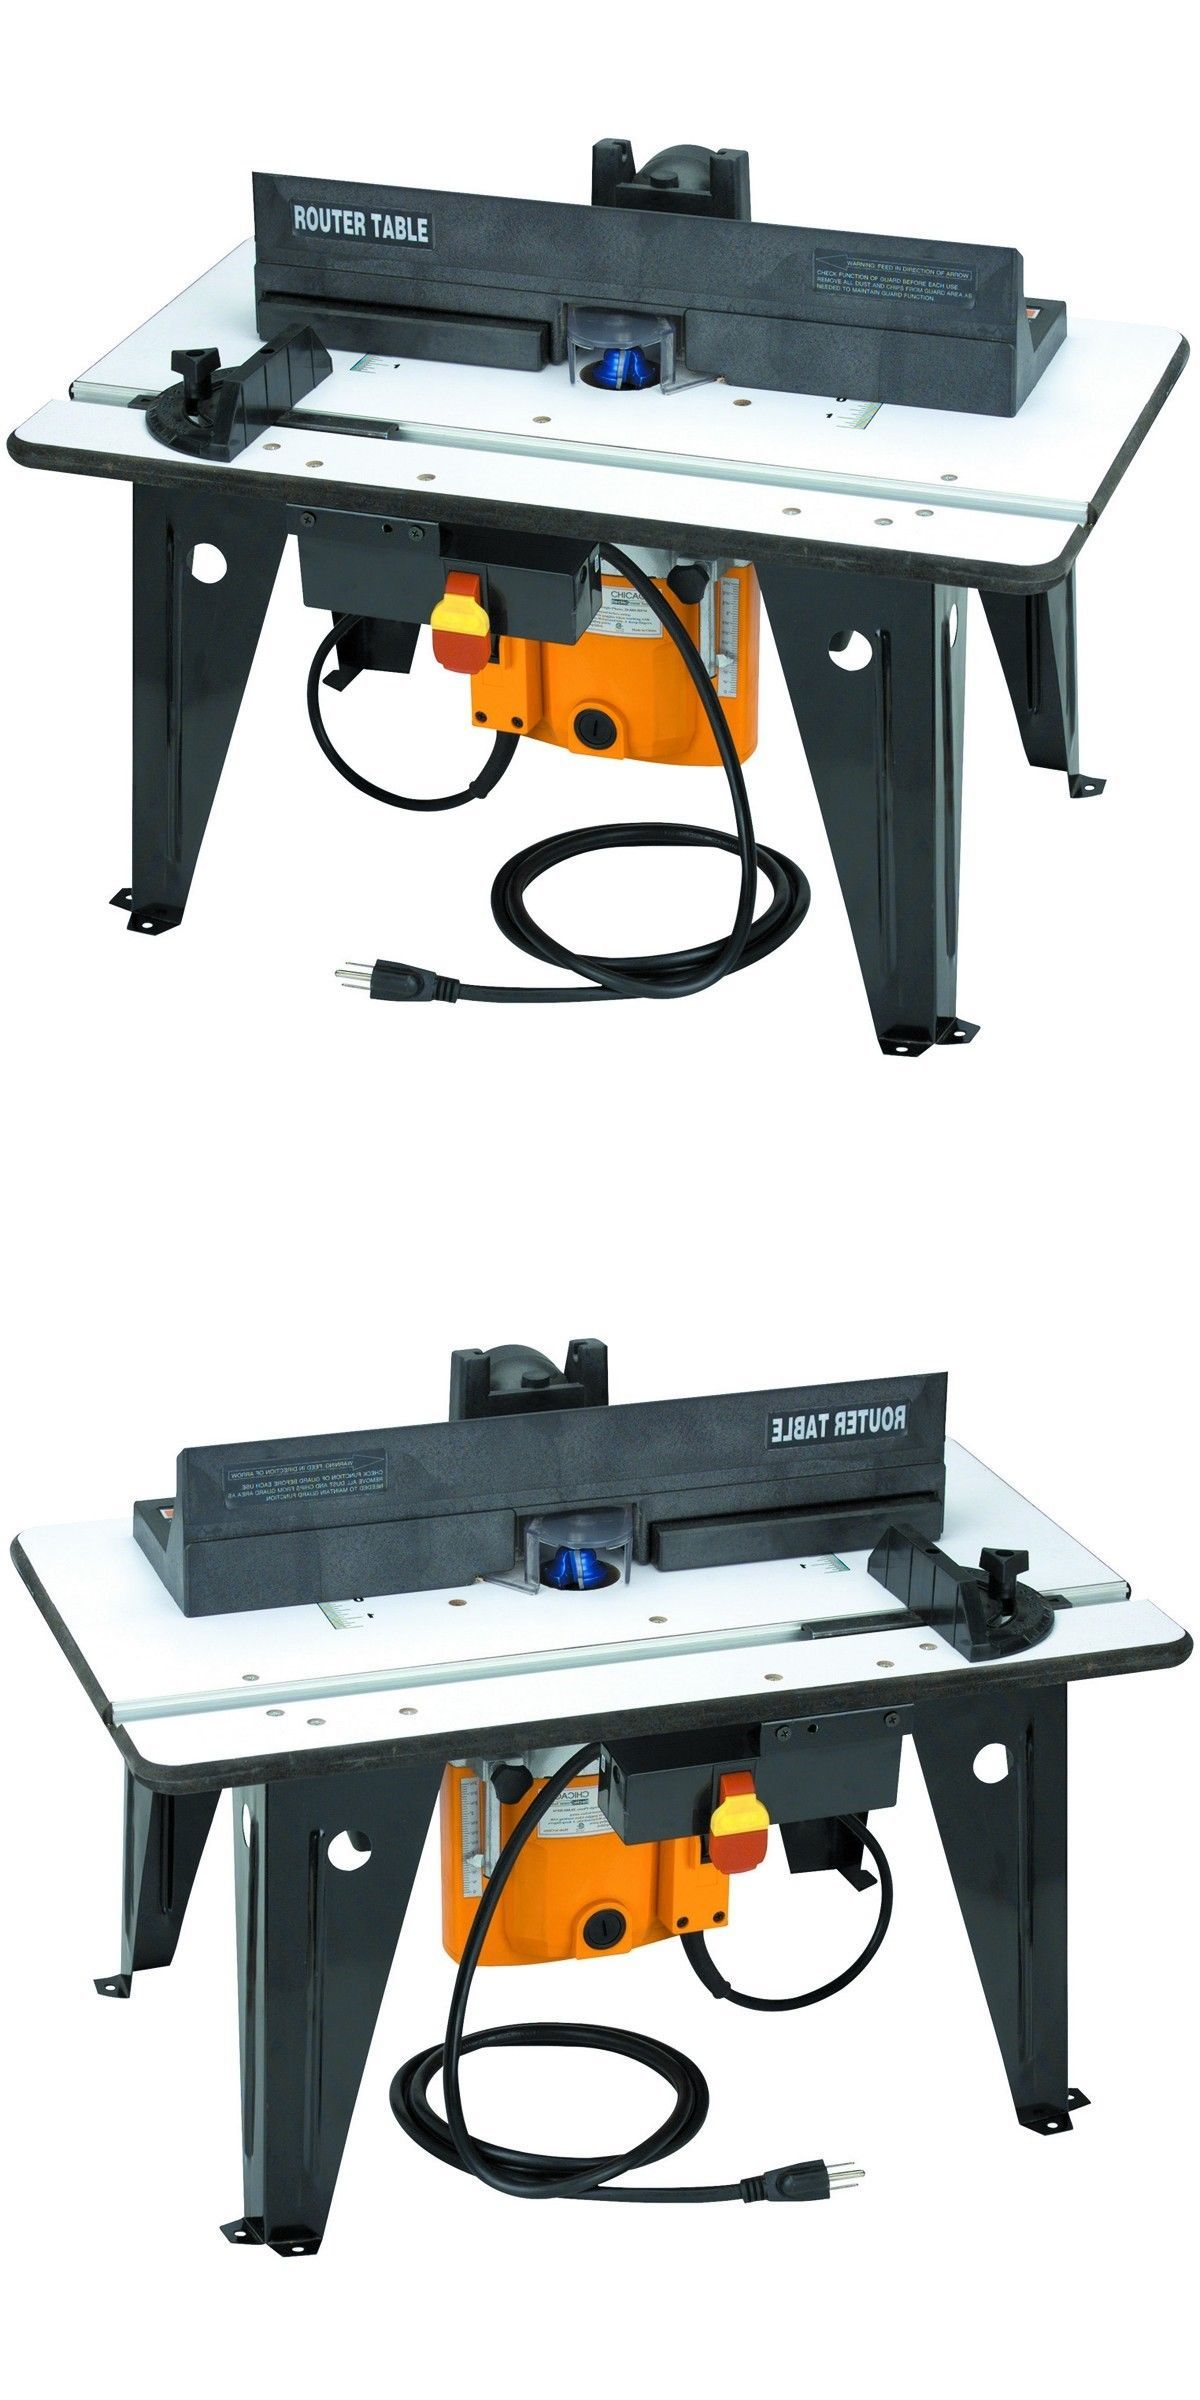 Router Table Bench Top With 1 3 4 Hp Router 11 Amps Woodshop 638084243527 Ebay Router Table Top Routers Router Tables